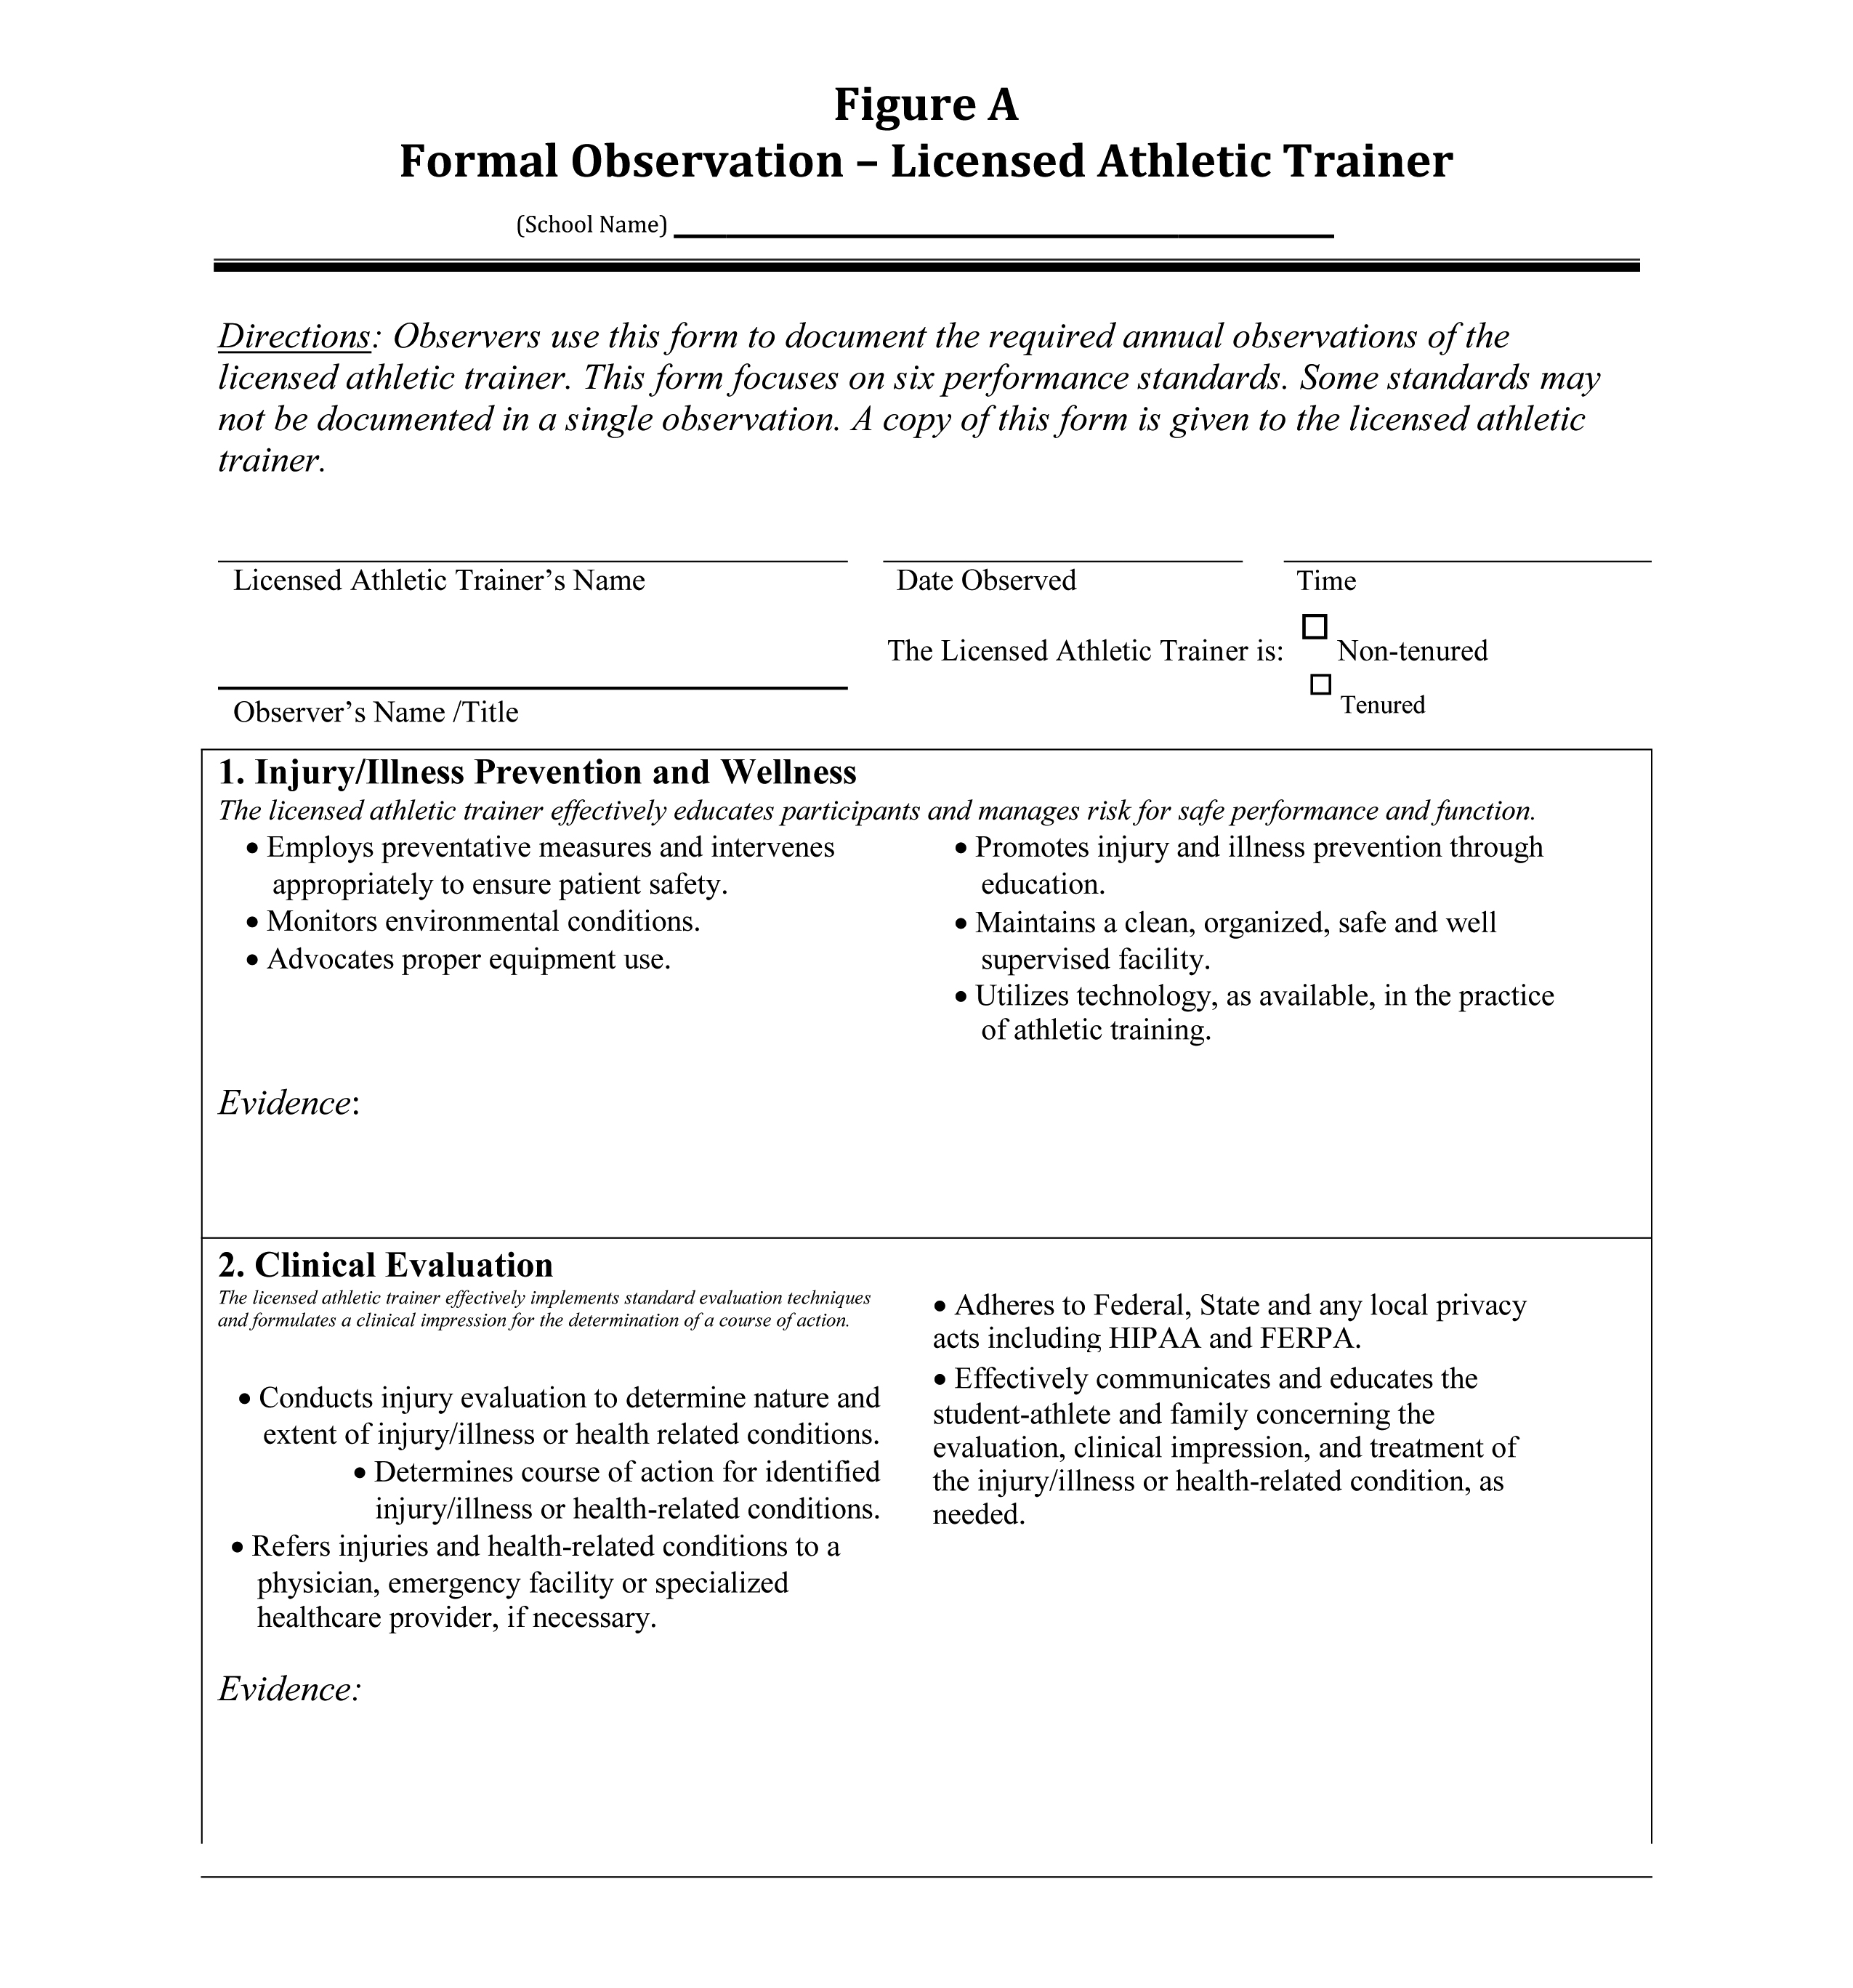 Formal Observation – Licensed Athletic Trainer